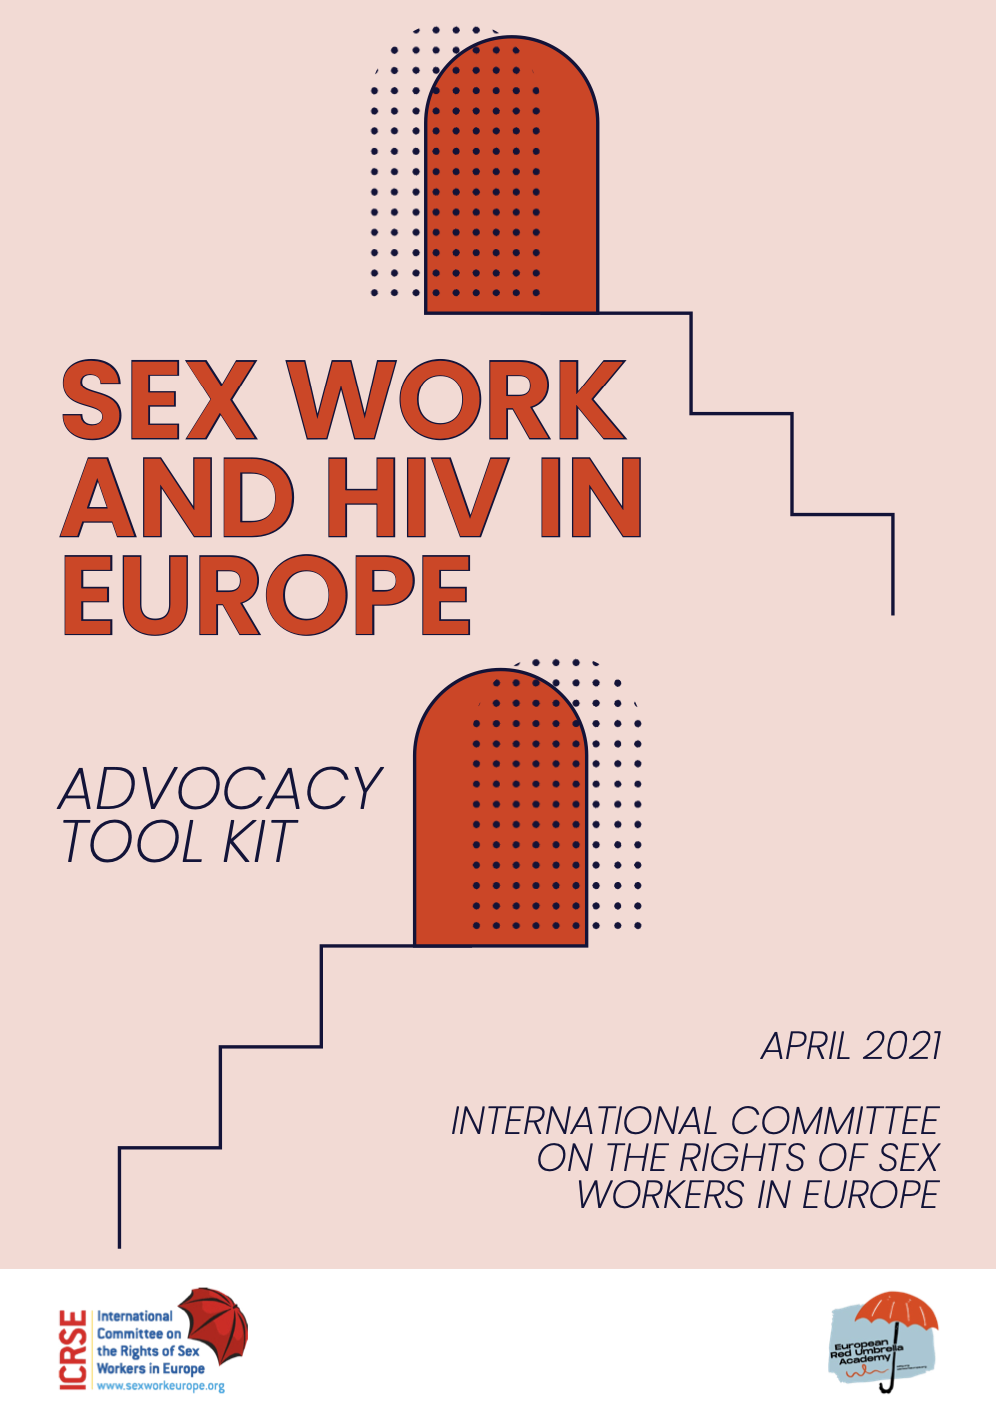 Advocacy Tool on Sex Work and HIV in Europe